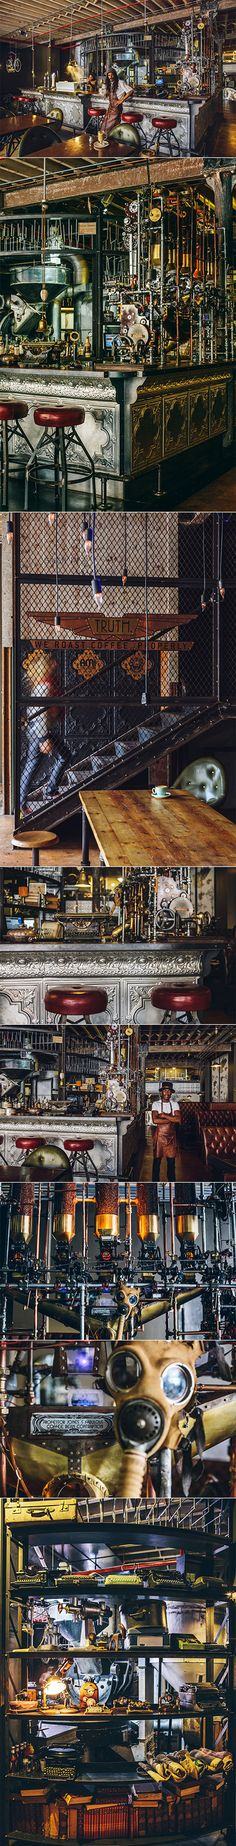 This radically designed steampunk-themed coffee shop was created by Heldane Martin who considered the form factor of espresso machines and coffee roasters to be somewhat similar to the Victorian futuristic fantasy style found in the aesthetic of steampunk. The hope was also to personify Truth's attempt at roasting the very best coffee by offering a perfectly executed space.